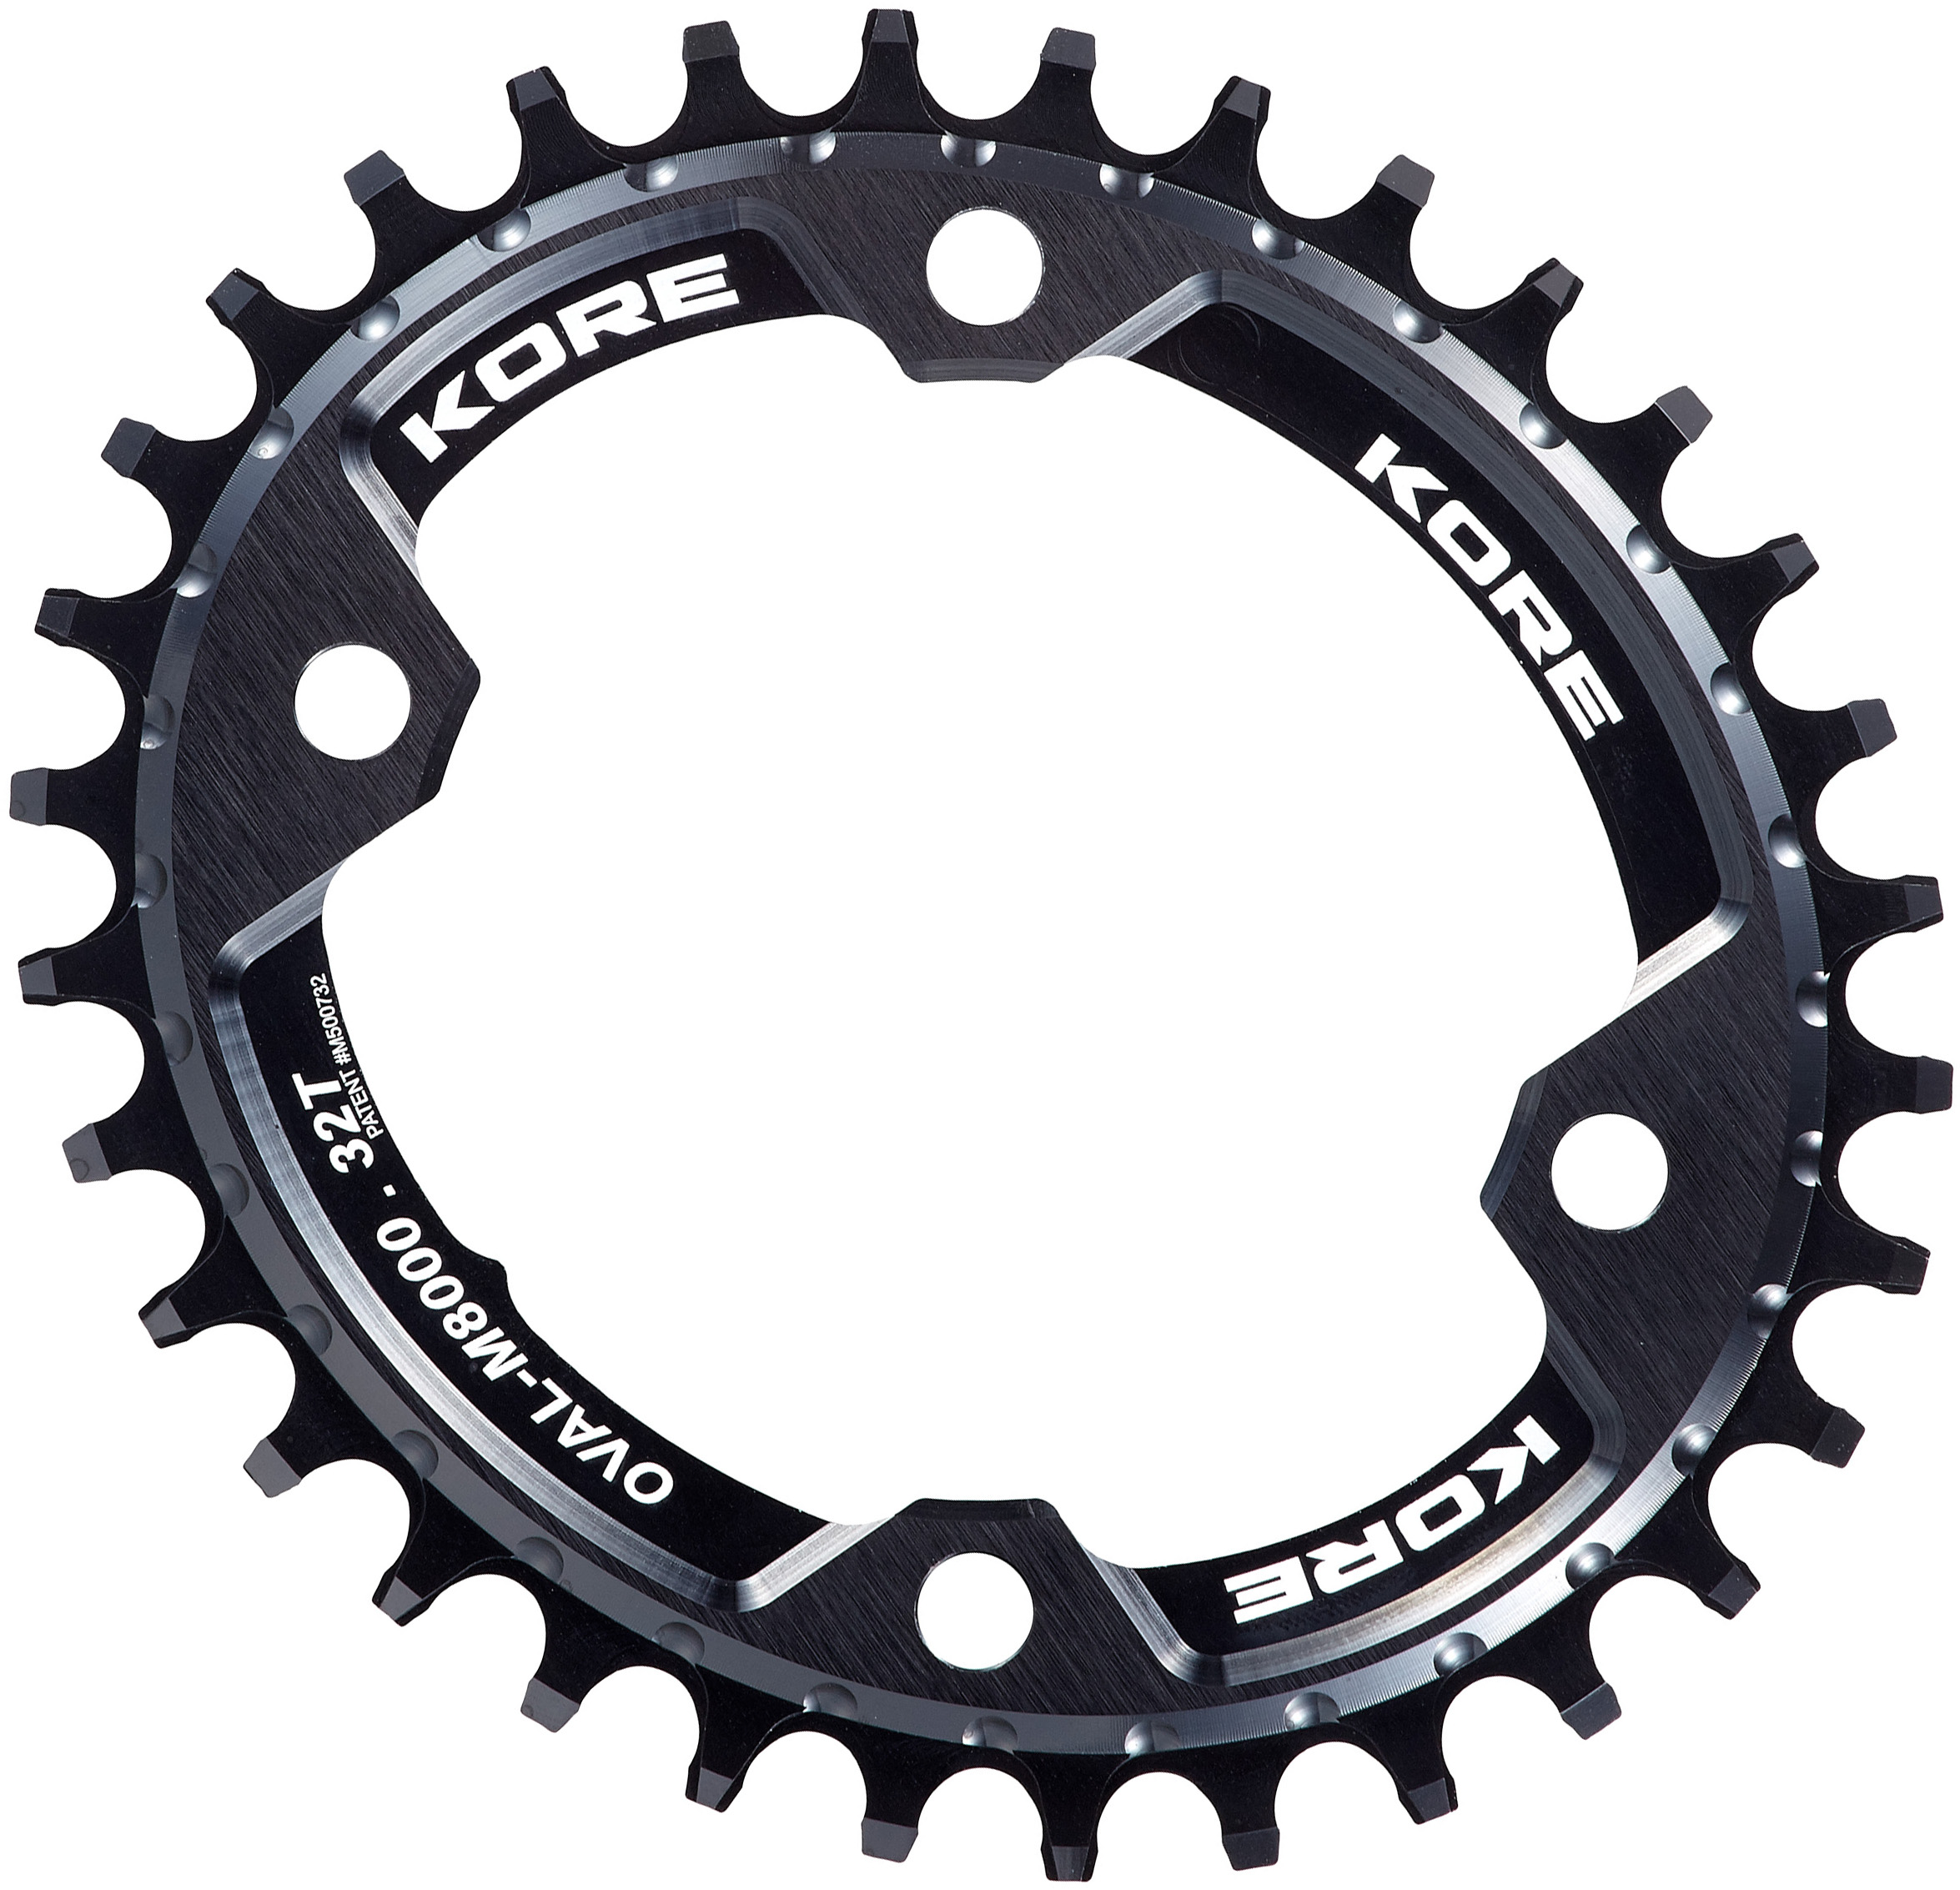 Kore Stronghold N/W Oval Chainring XT M8000 | chainrings_component